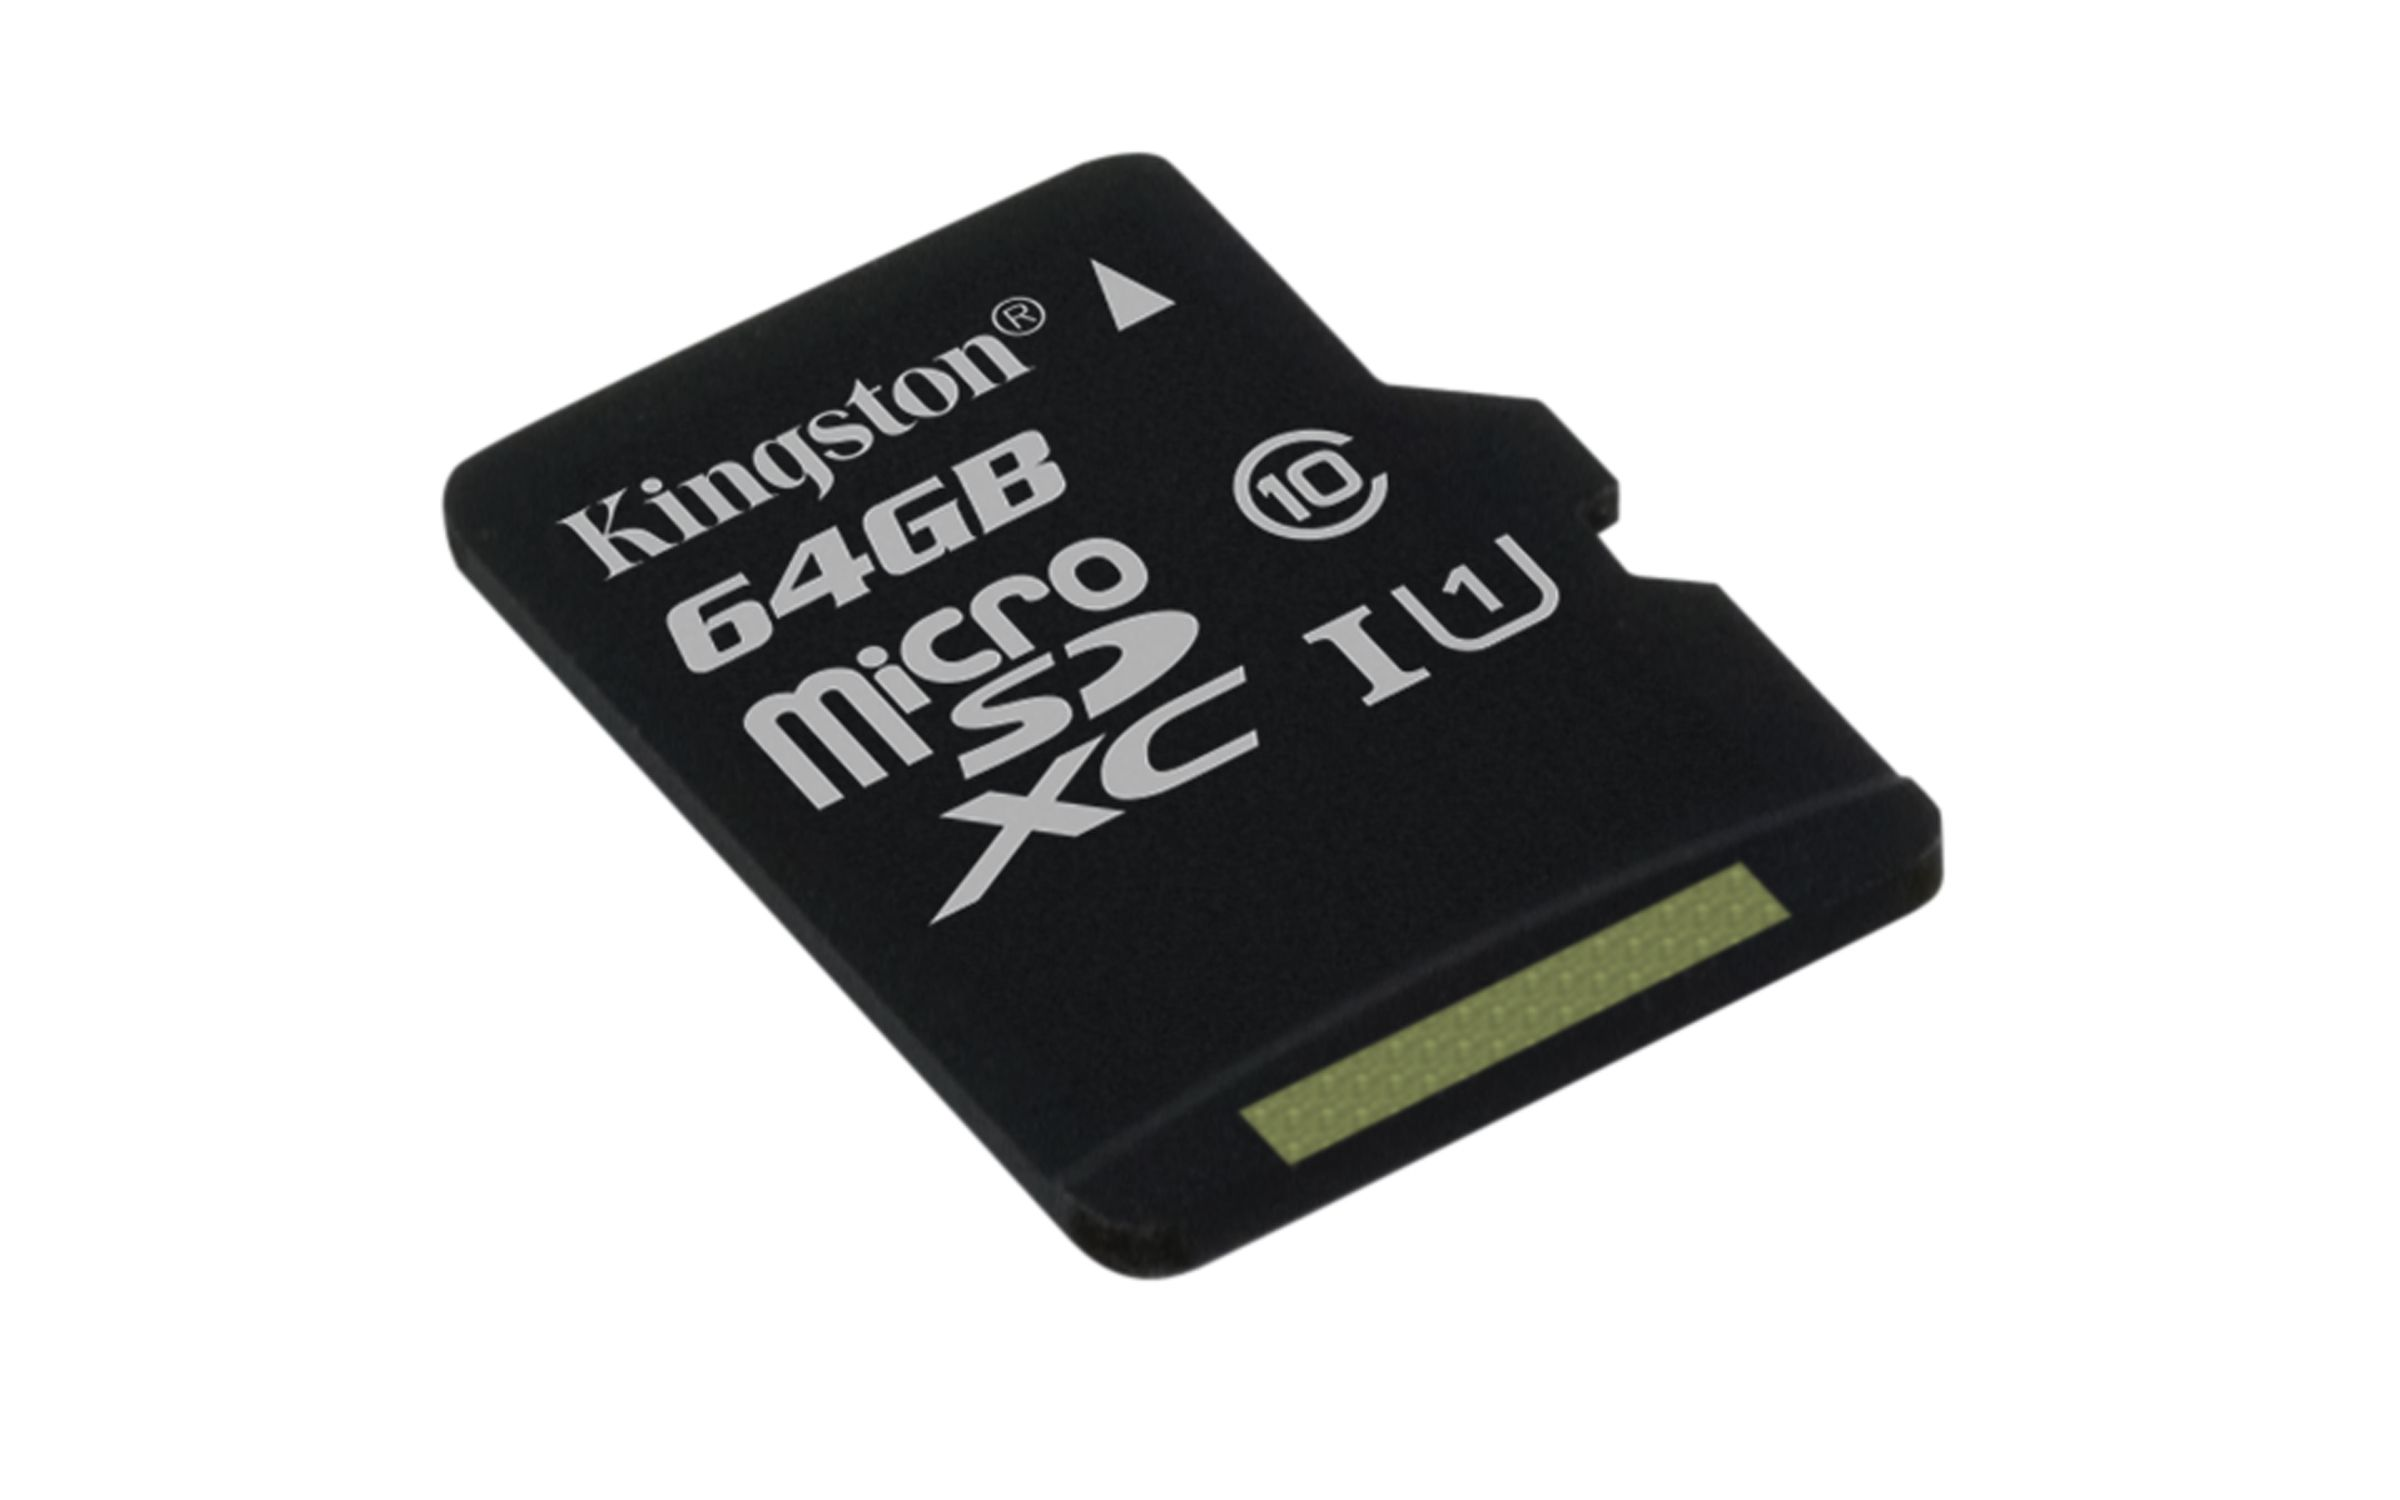 Ver Kingston Technology microSDXC Class 10 UHS I Card 64GB